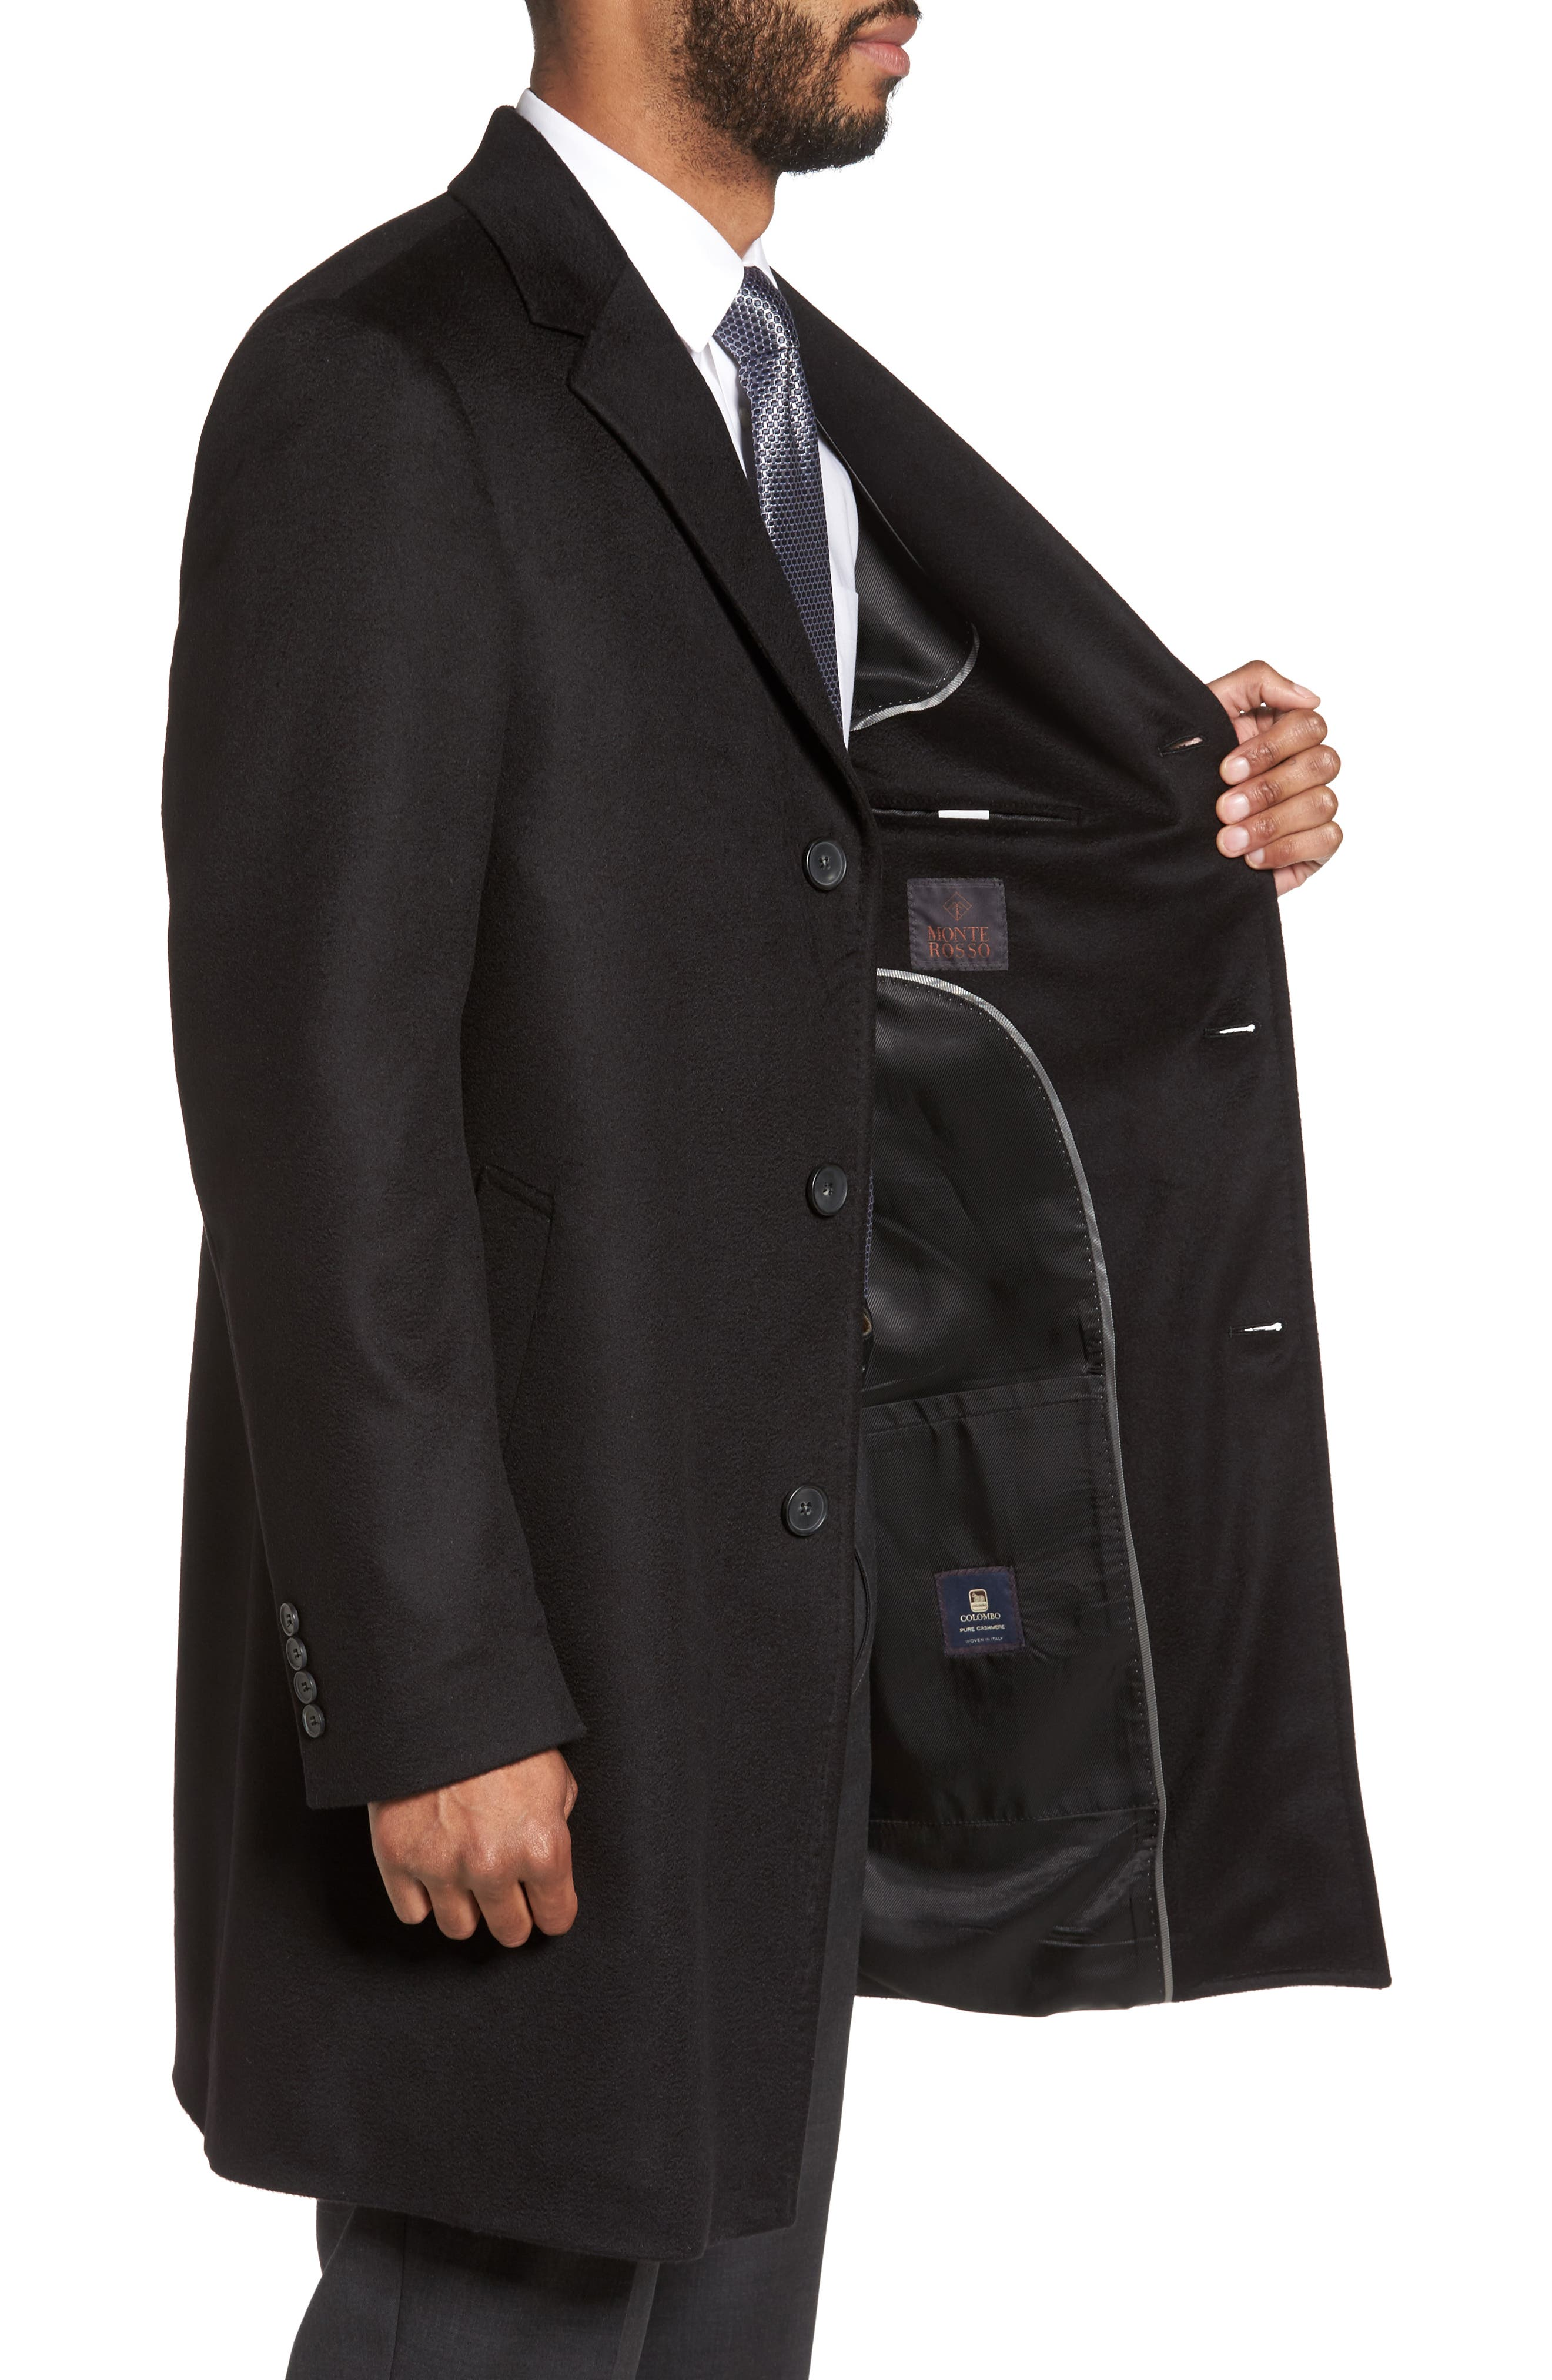 Carter Classic Fit Cashmere Overcoat,                             Alternate thumbnail 3, color,                             001